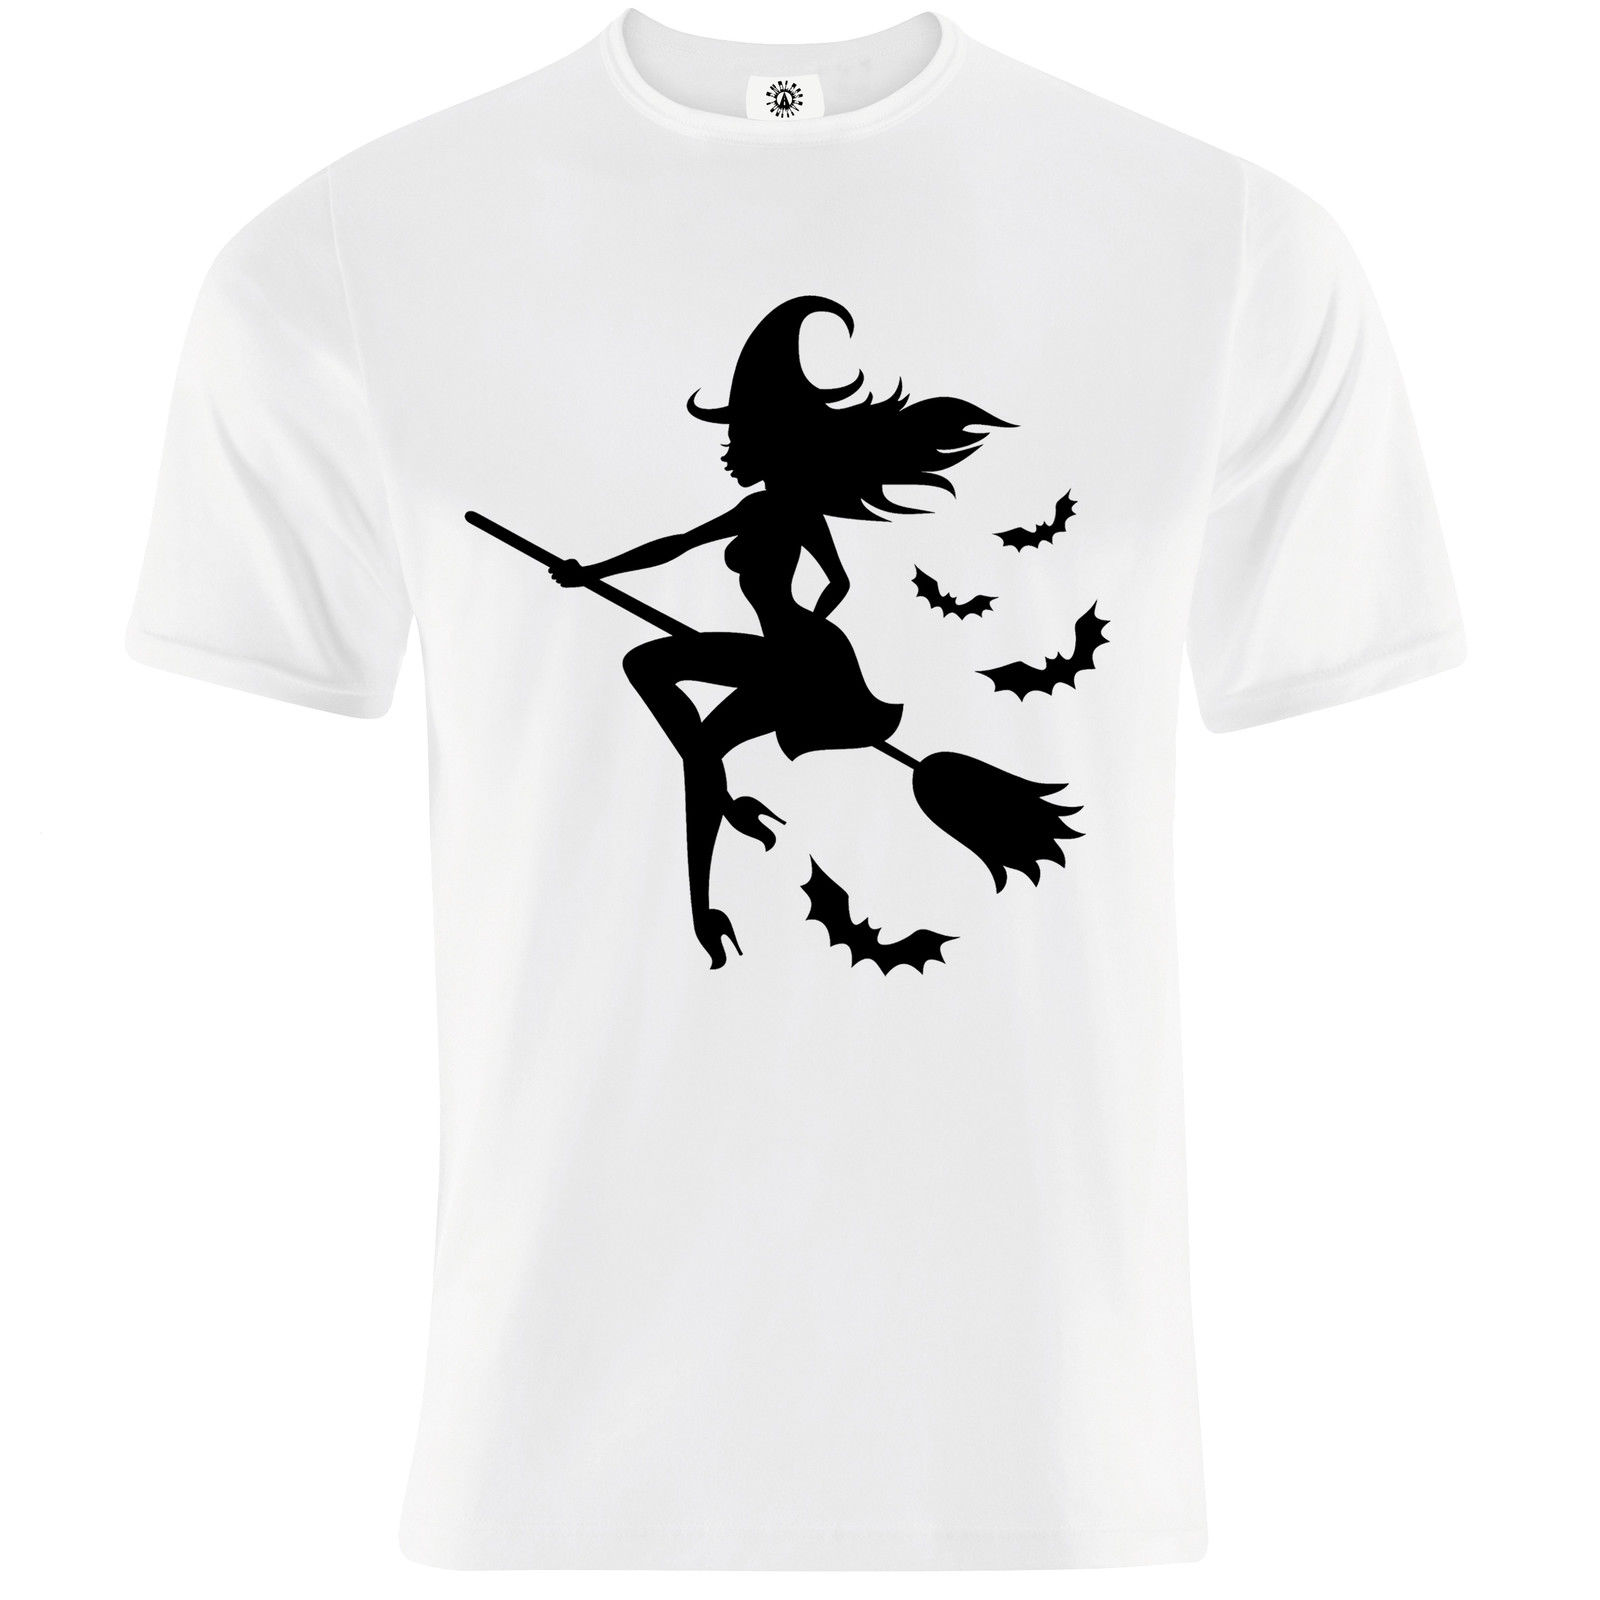 Mens BWitched Wiccan goth Halloween magic supernatural design T Shirt New Shirts Funny Tops Tee Unisex